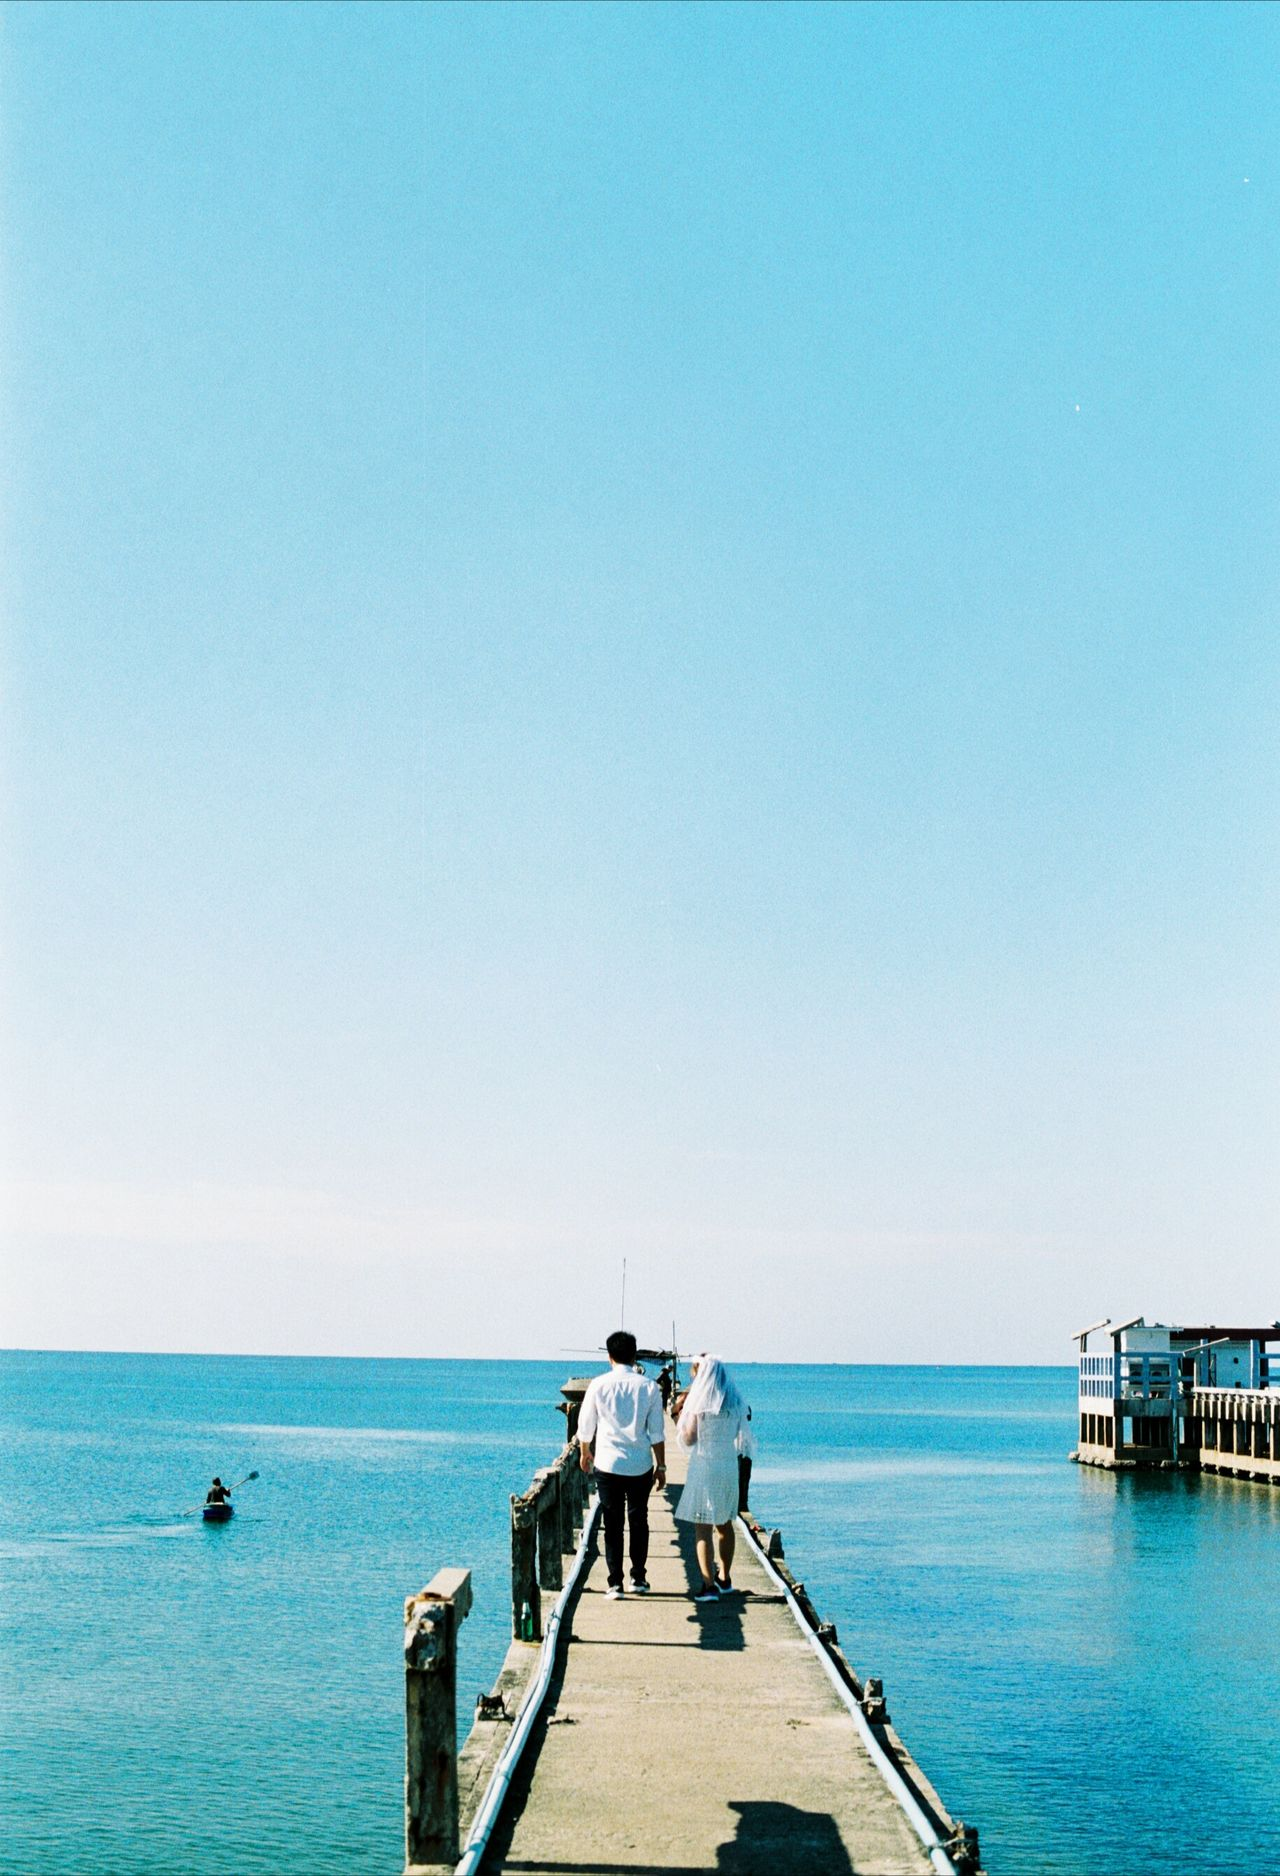 Live For The Story Sea Beach Horizon Over Water Blue Sunny Vacations Sky Adult Clear Sky Outdoors Water Summer People Togetherness Day Nautical Vessel Travel Destinations Full Length Feeling Nofilter Holiday EyeEmNewHere BYOPaper! Eyemphotography